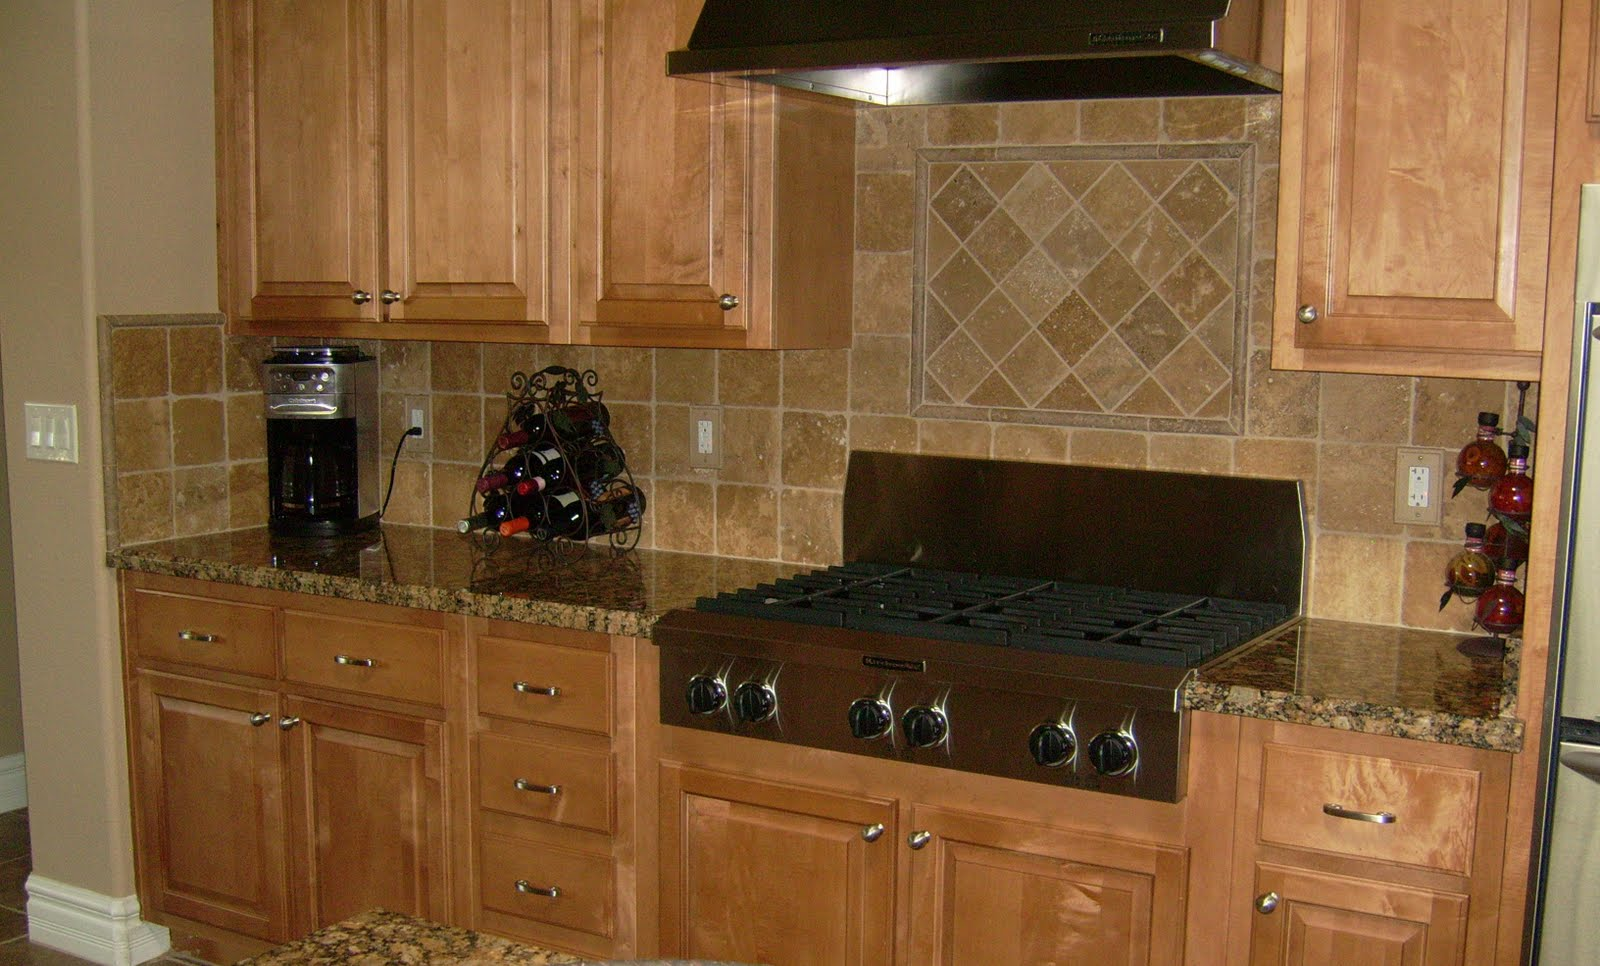 Pictures kitchen backsplash ideas Kitchen backsplash ideas for small kitchens